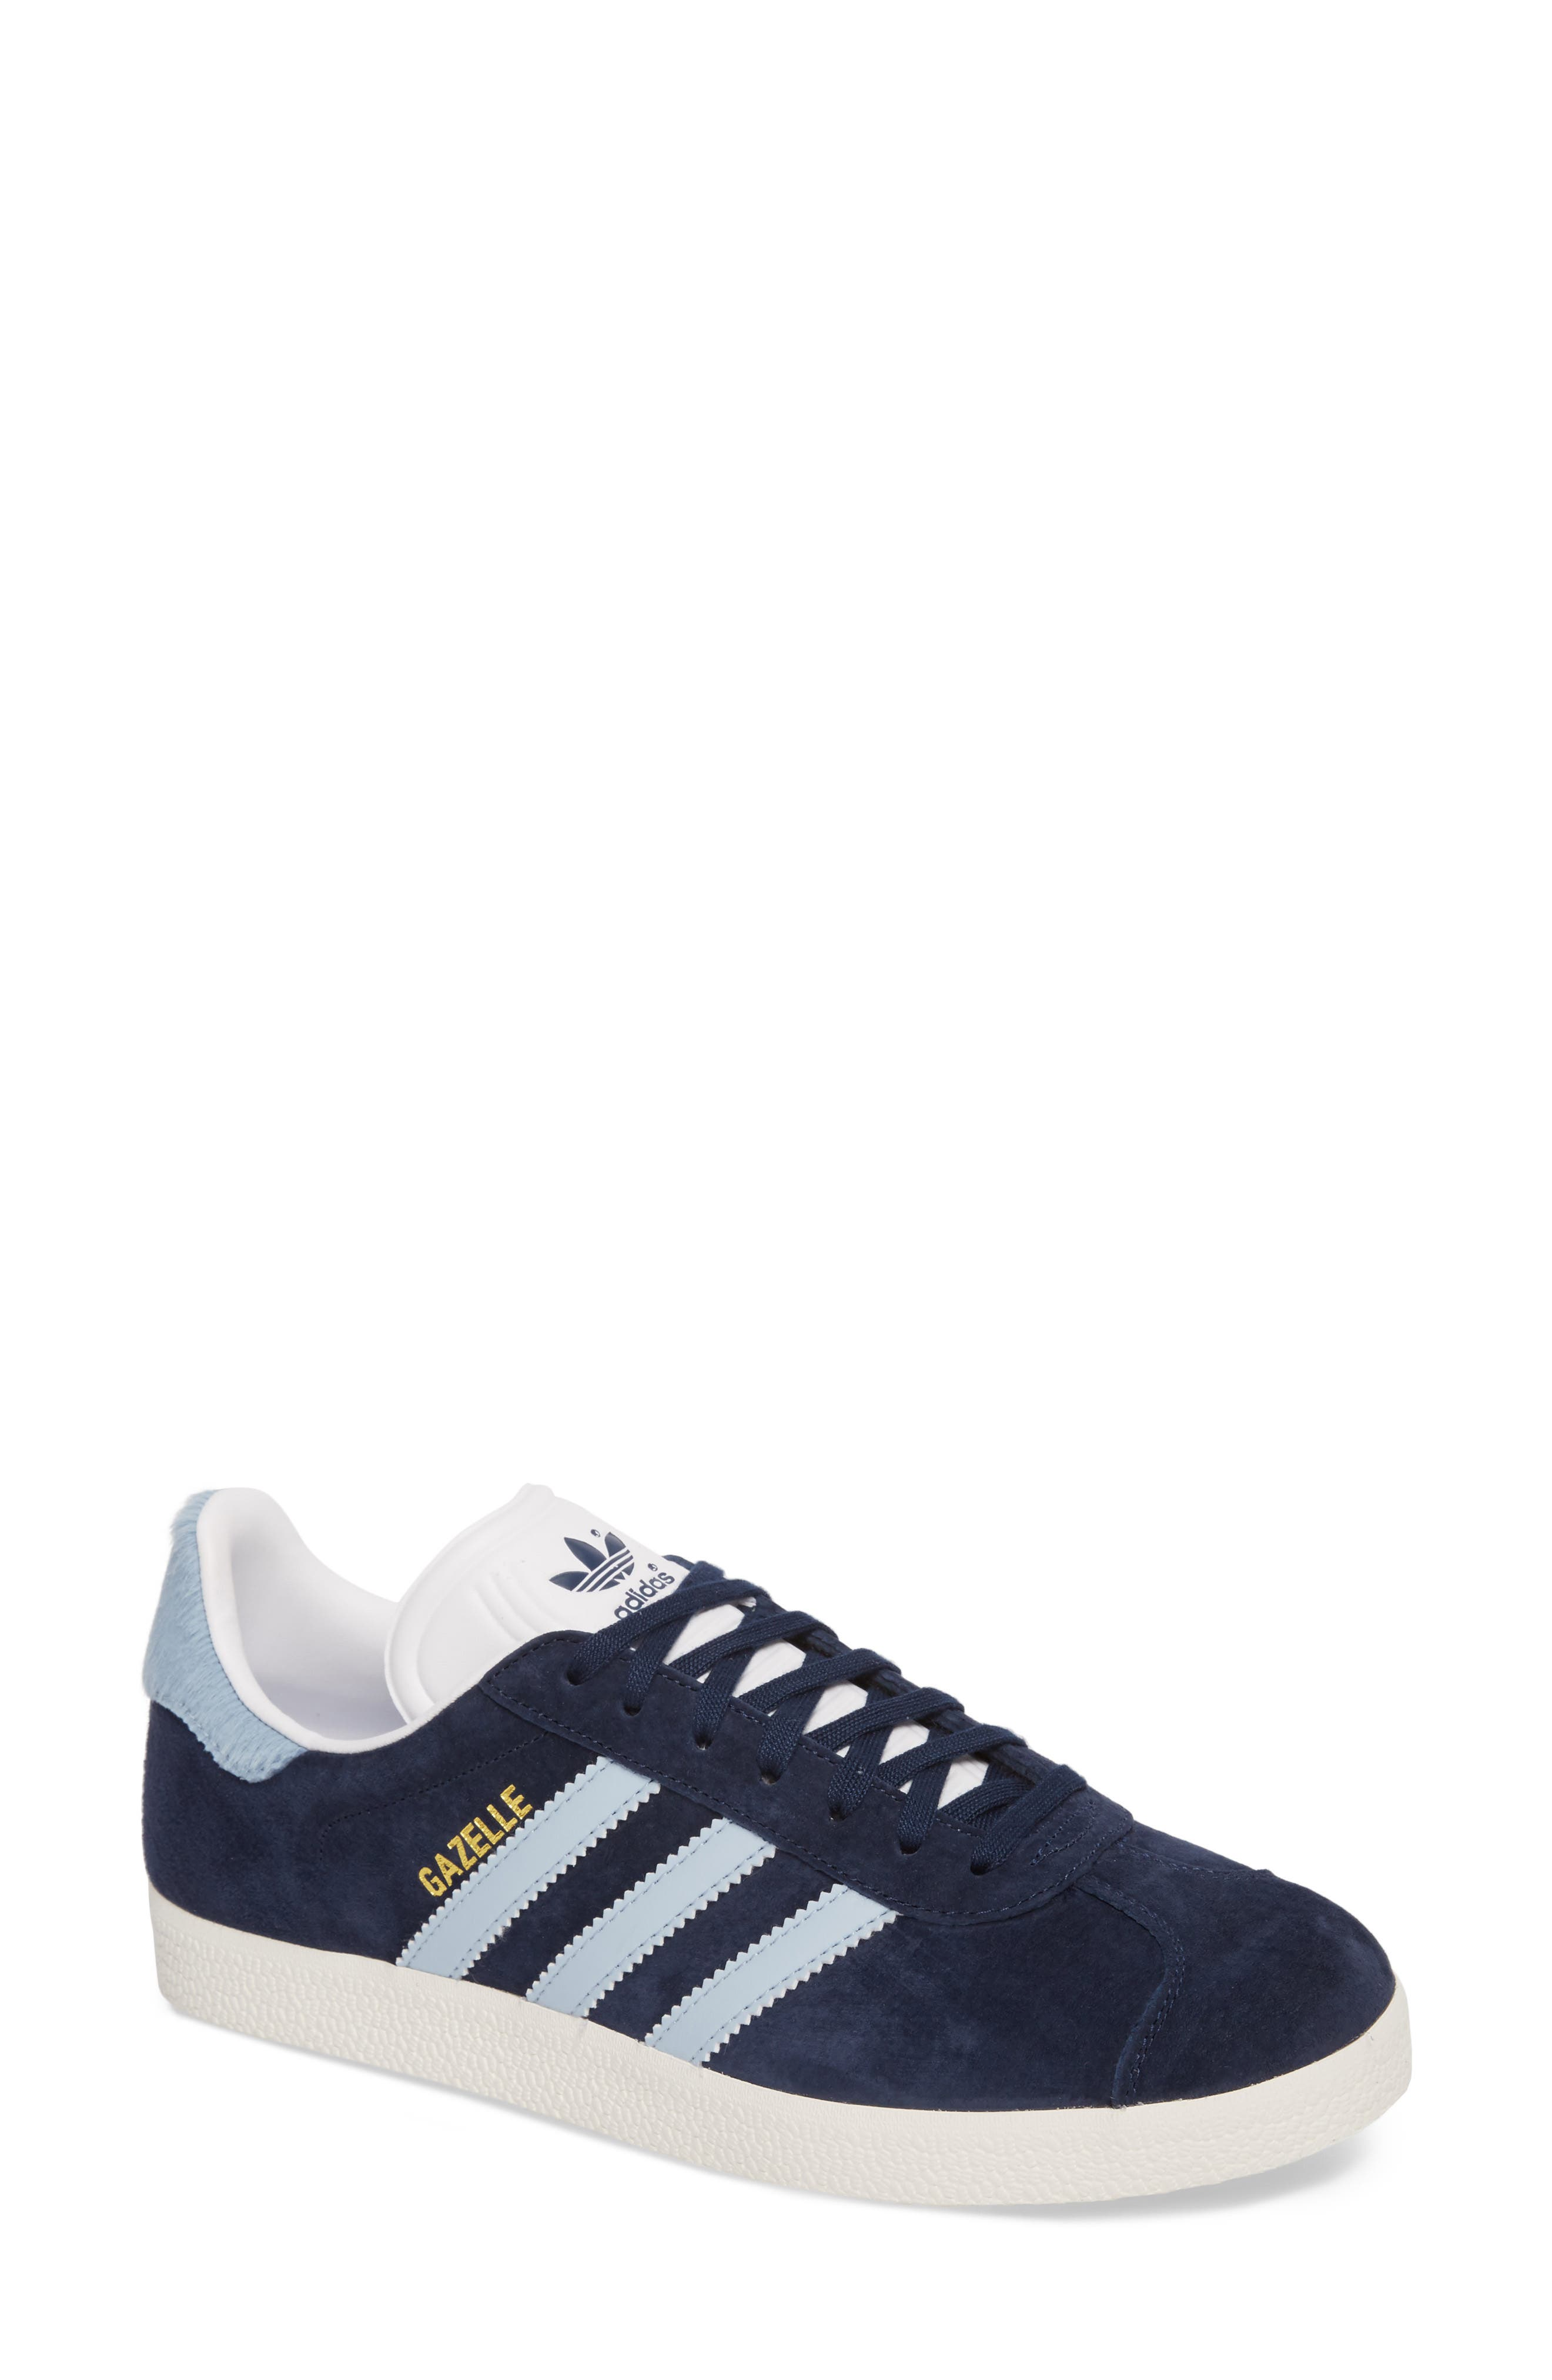 Gazelle Sneaker,                         Main,                         color, Navy/ Easy Blue/ White